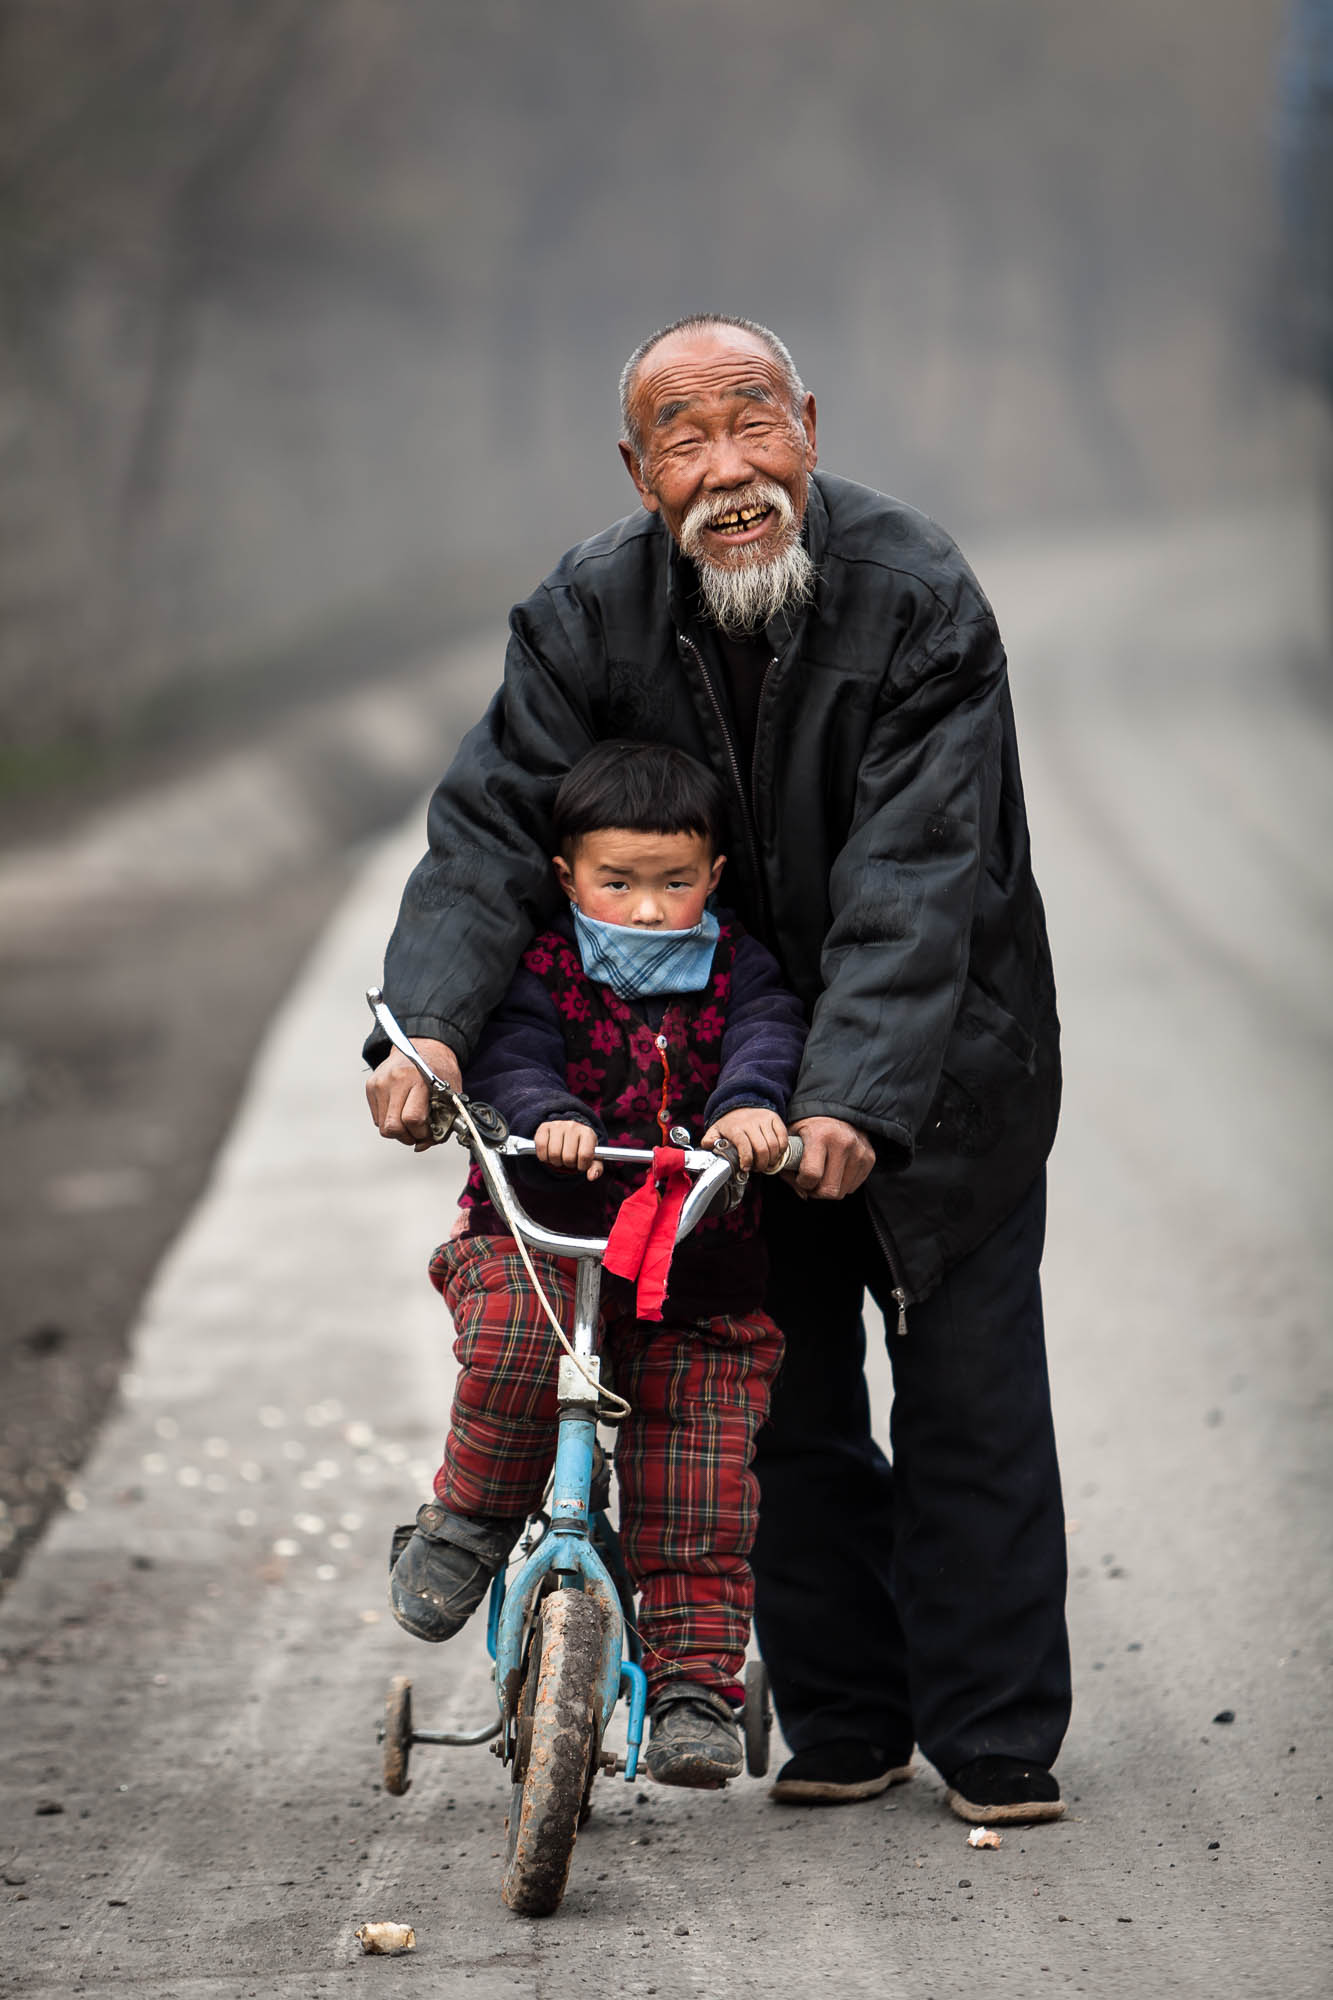 Out on the country road, with training wheels and grandpa.